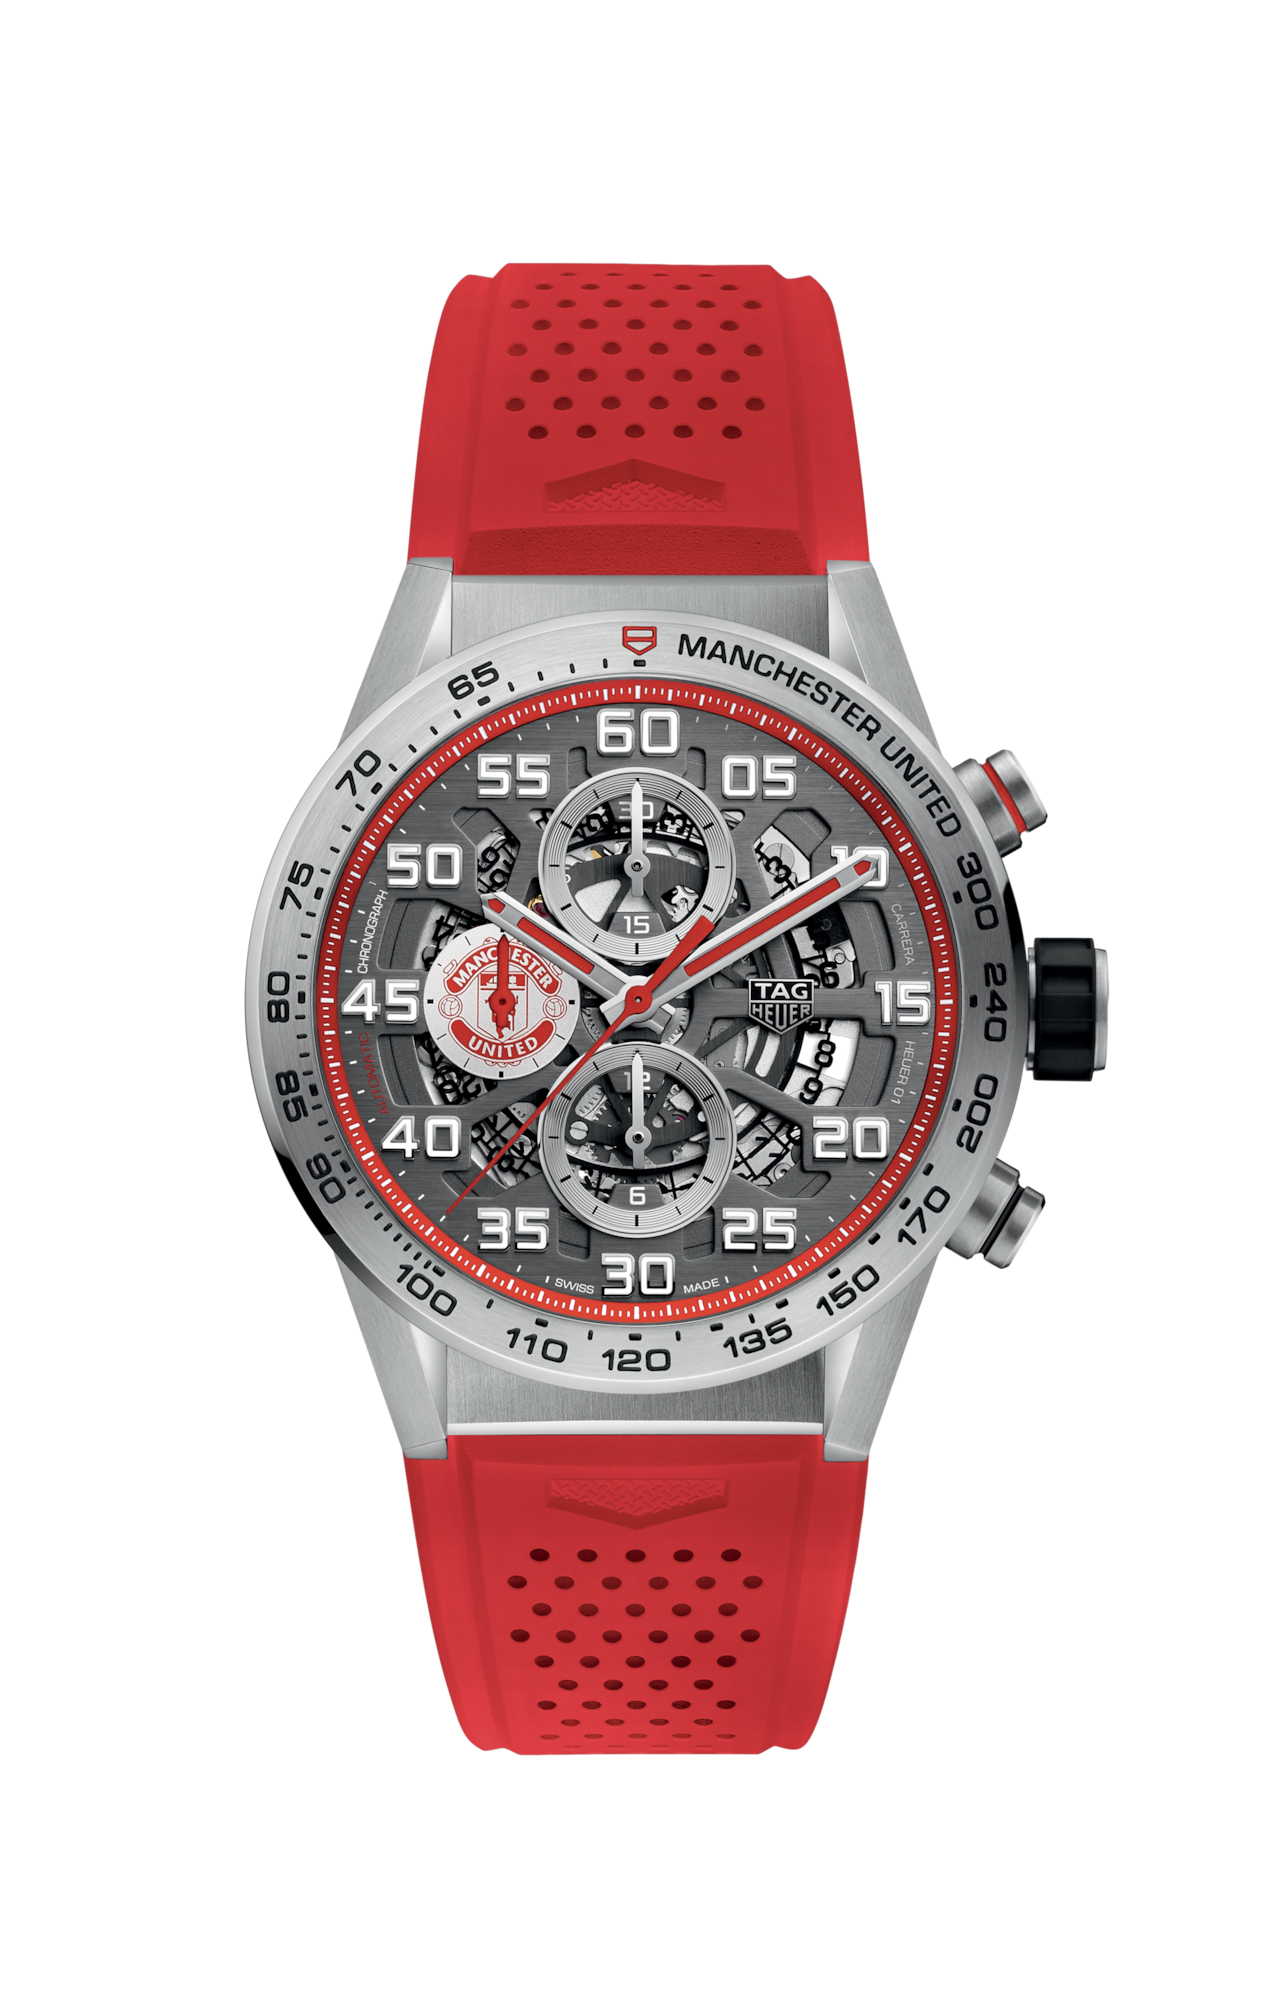 TAG HEUER CARRERA MANCHESTER UNITED SPECIAL EDITION